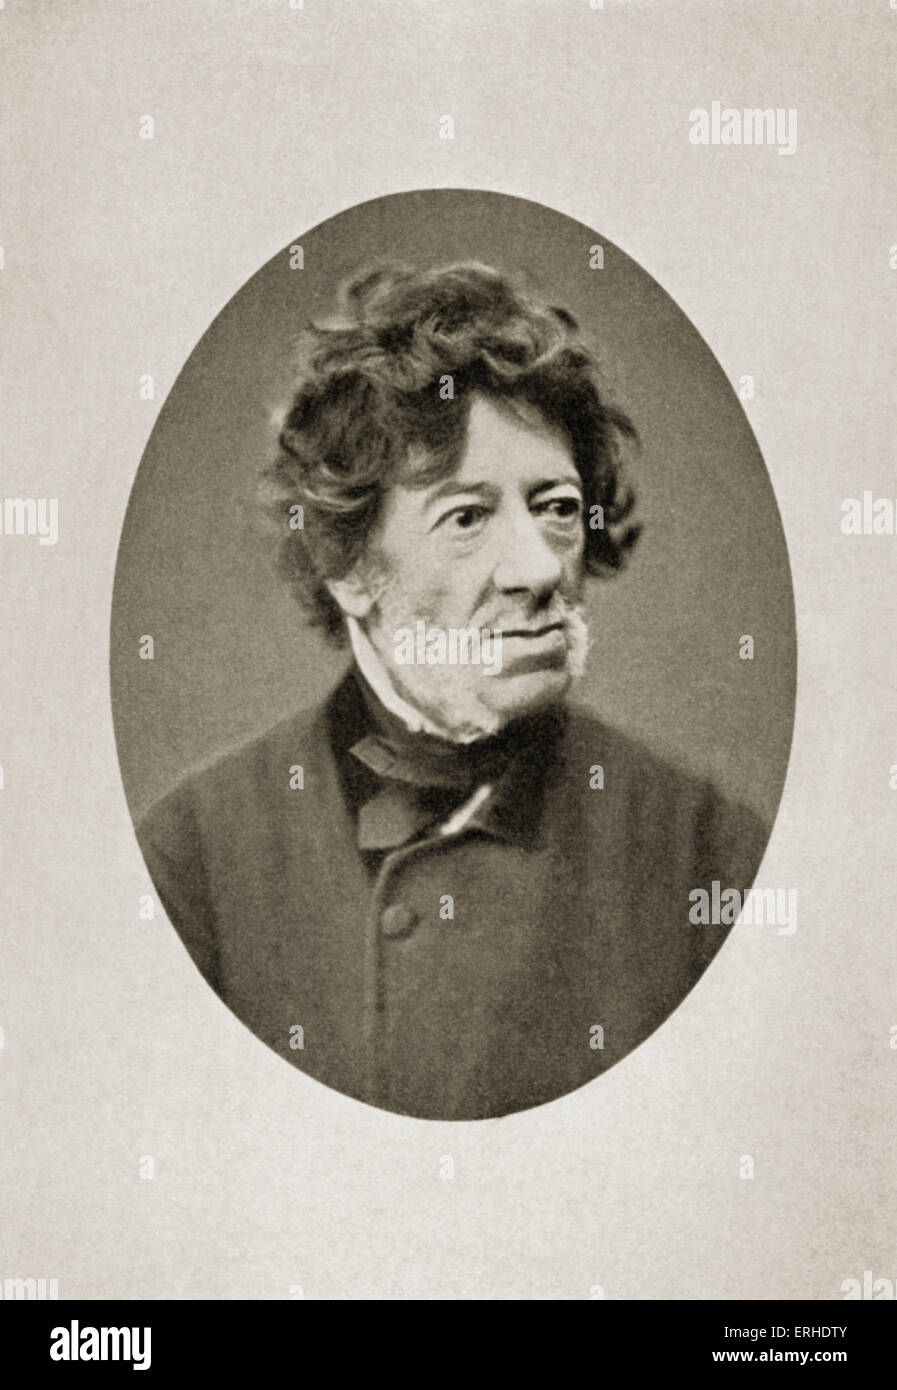 HUMBOLDT / Humbold, Baron Alexander von - Prussian naturalist and explorer who explored much of Central and South - Stock Image